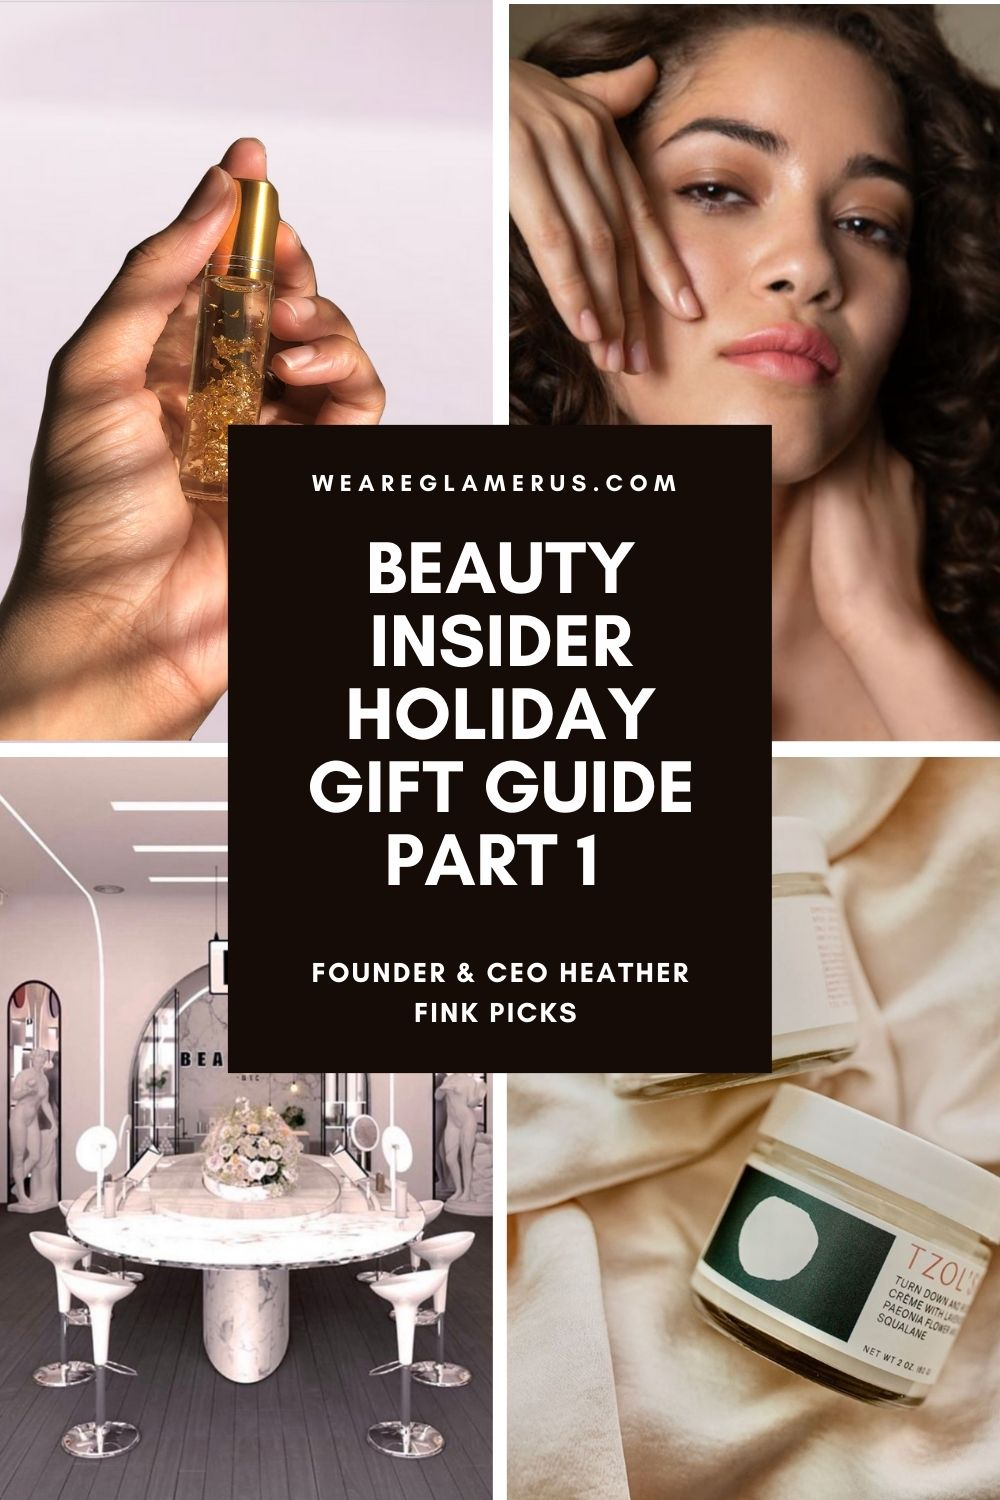 Welcome to the first installment in my Beauty Insider Holiday Gift Guide series for 2020! Founder & CEO Heather Fink from The Sexiest Beauty shares her picks for MAKEUP, SKINCARE, HAIRCARE, NAILS & BODY CARE in today's installment!